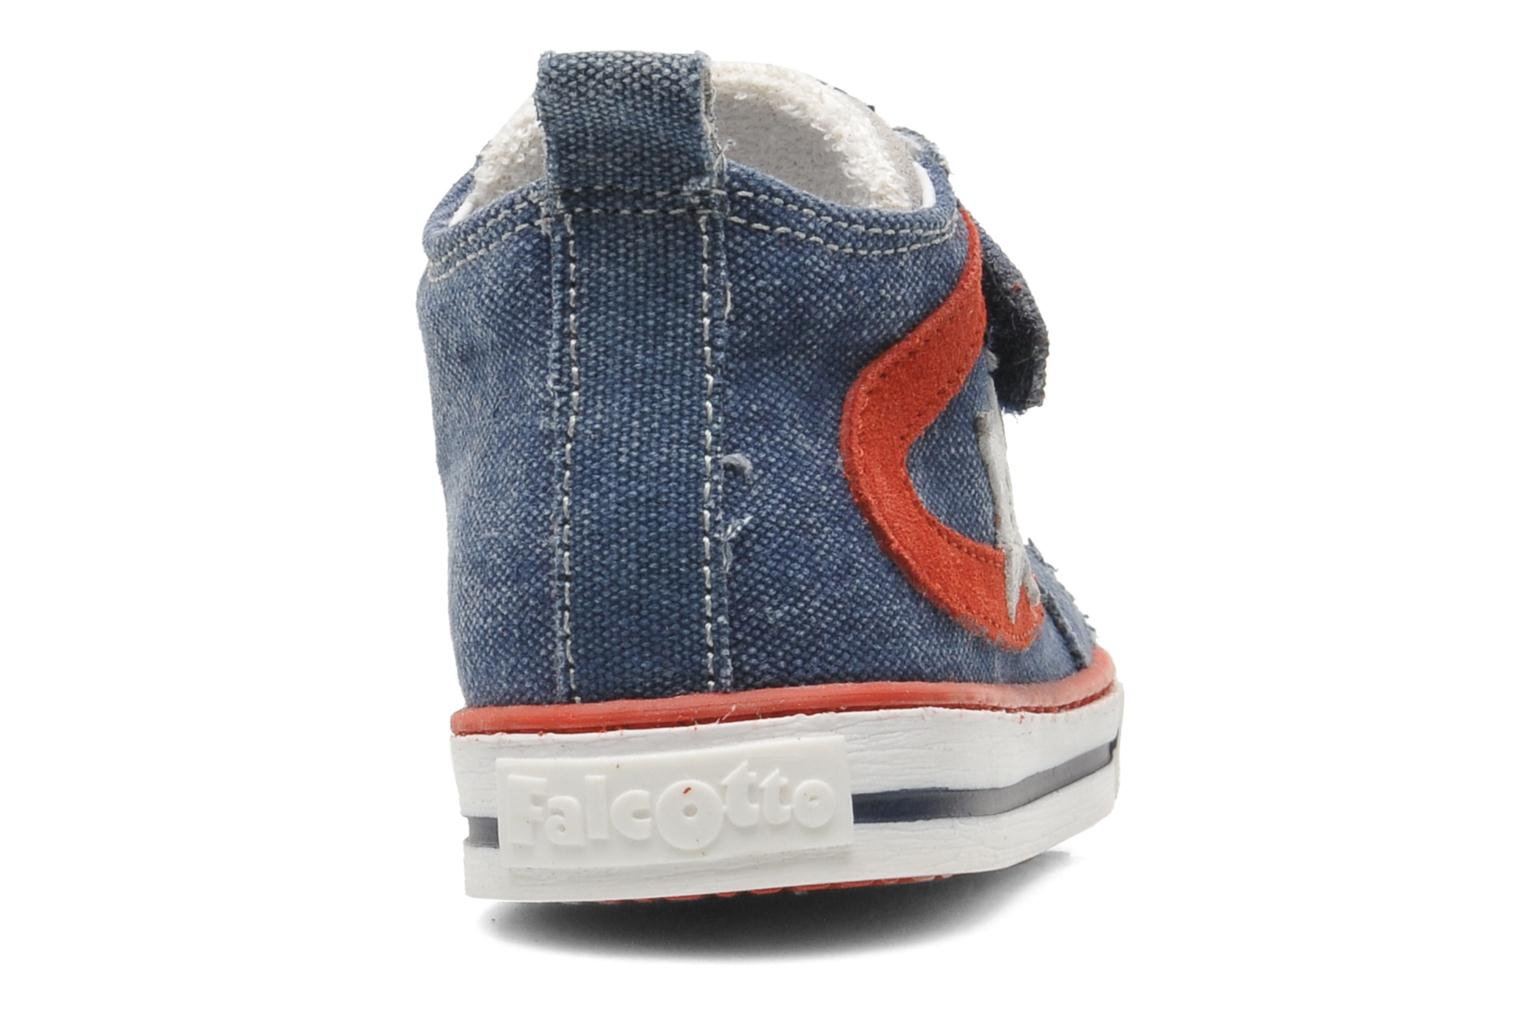 Atchroe Grigrio Jeans